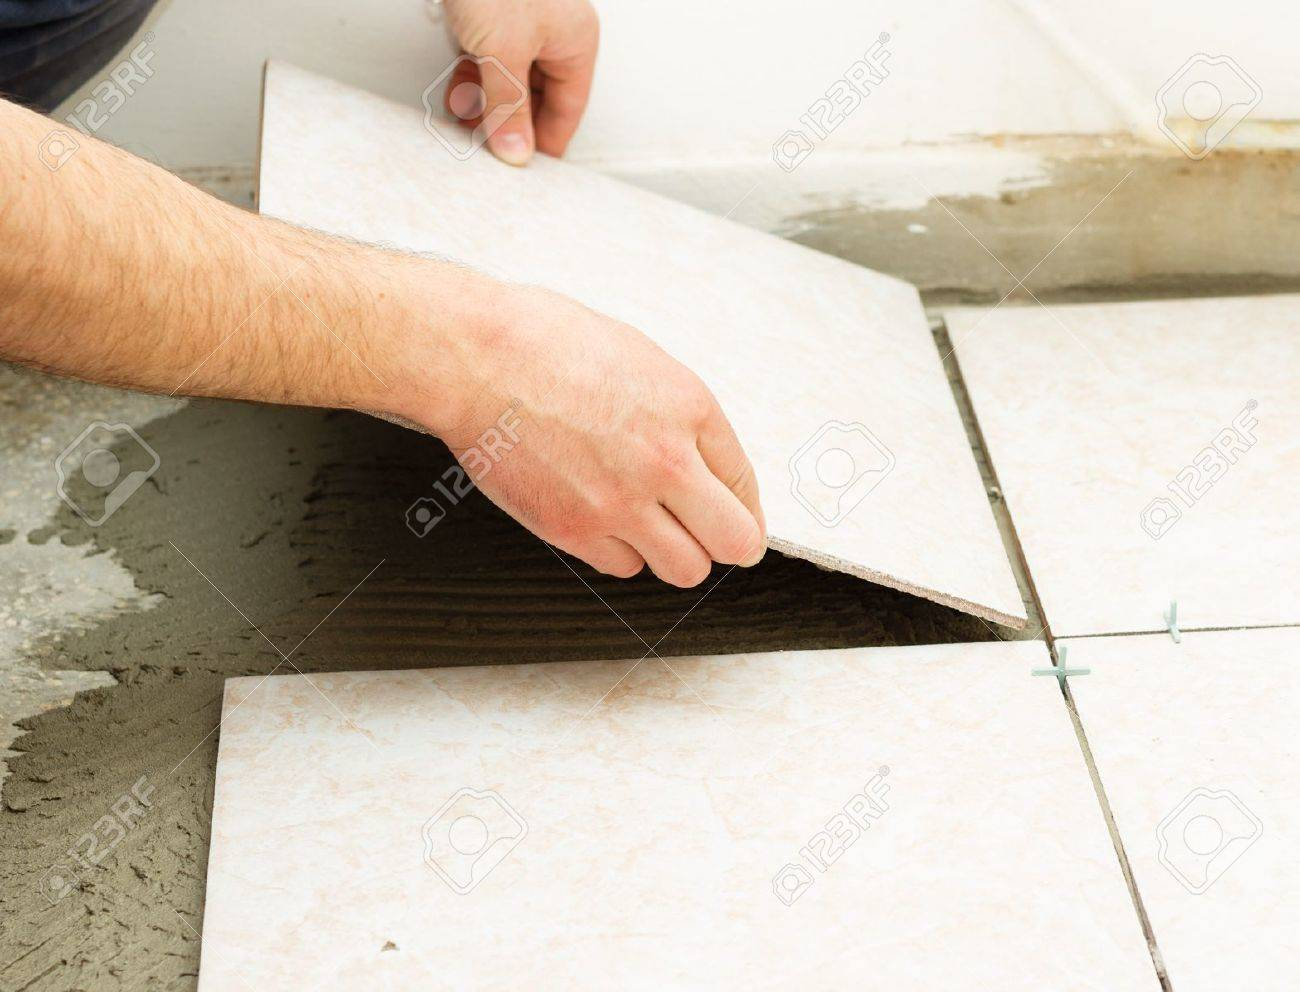 Manual Worker Covering Bathroom Floor With Caremic Tiles Stock Photo 28426261